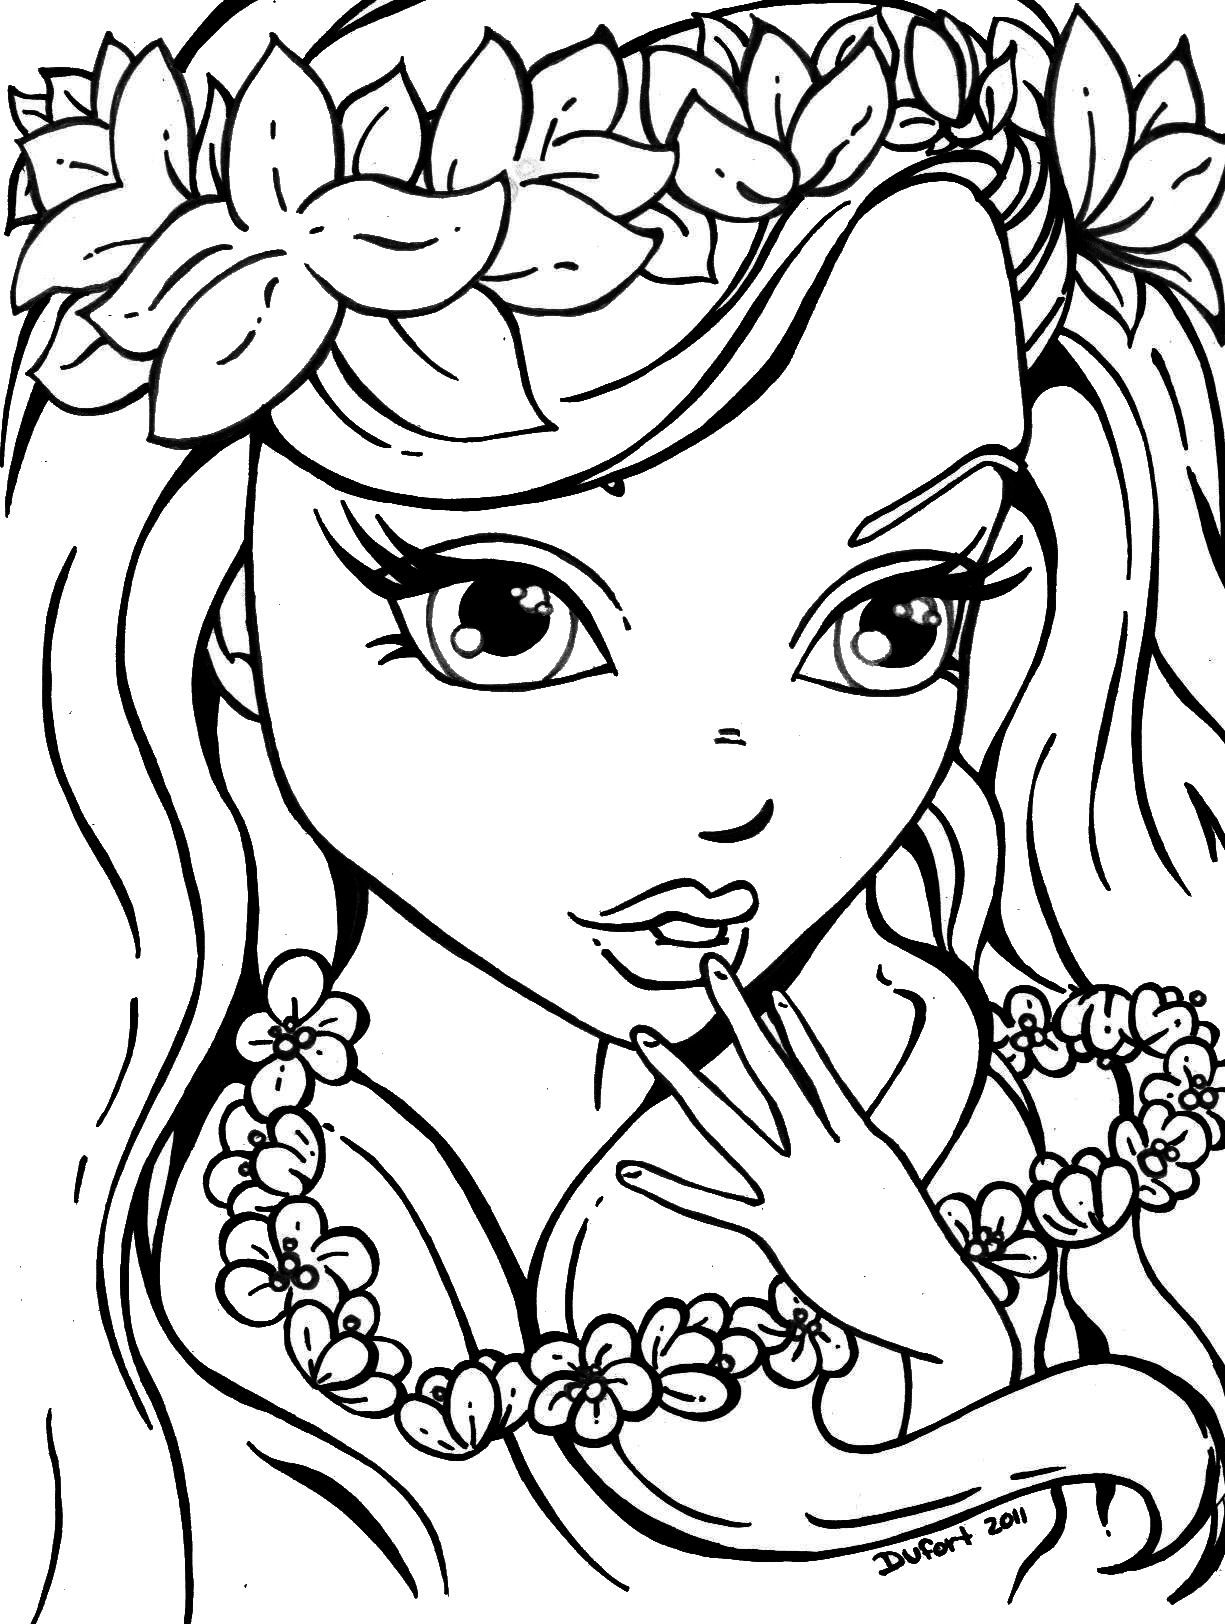 Coloring Pages for Girls | Disney Princess Tiana Coloring Pages ...